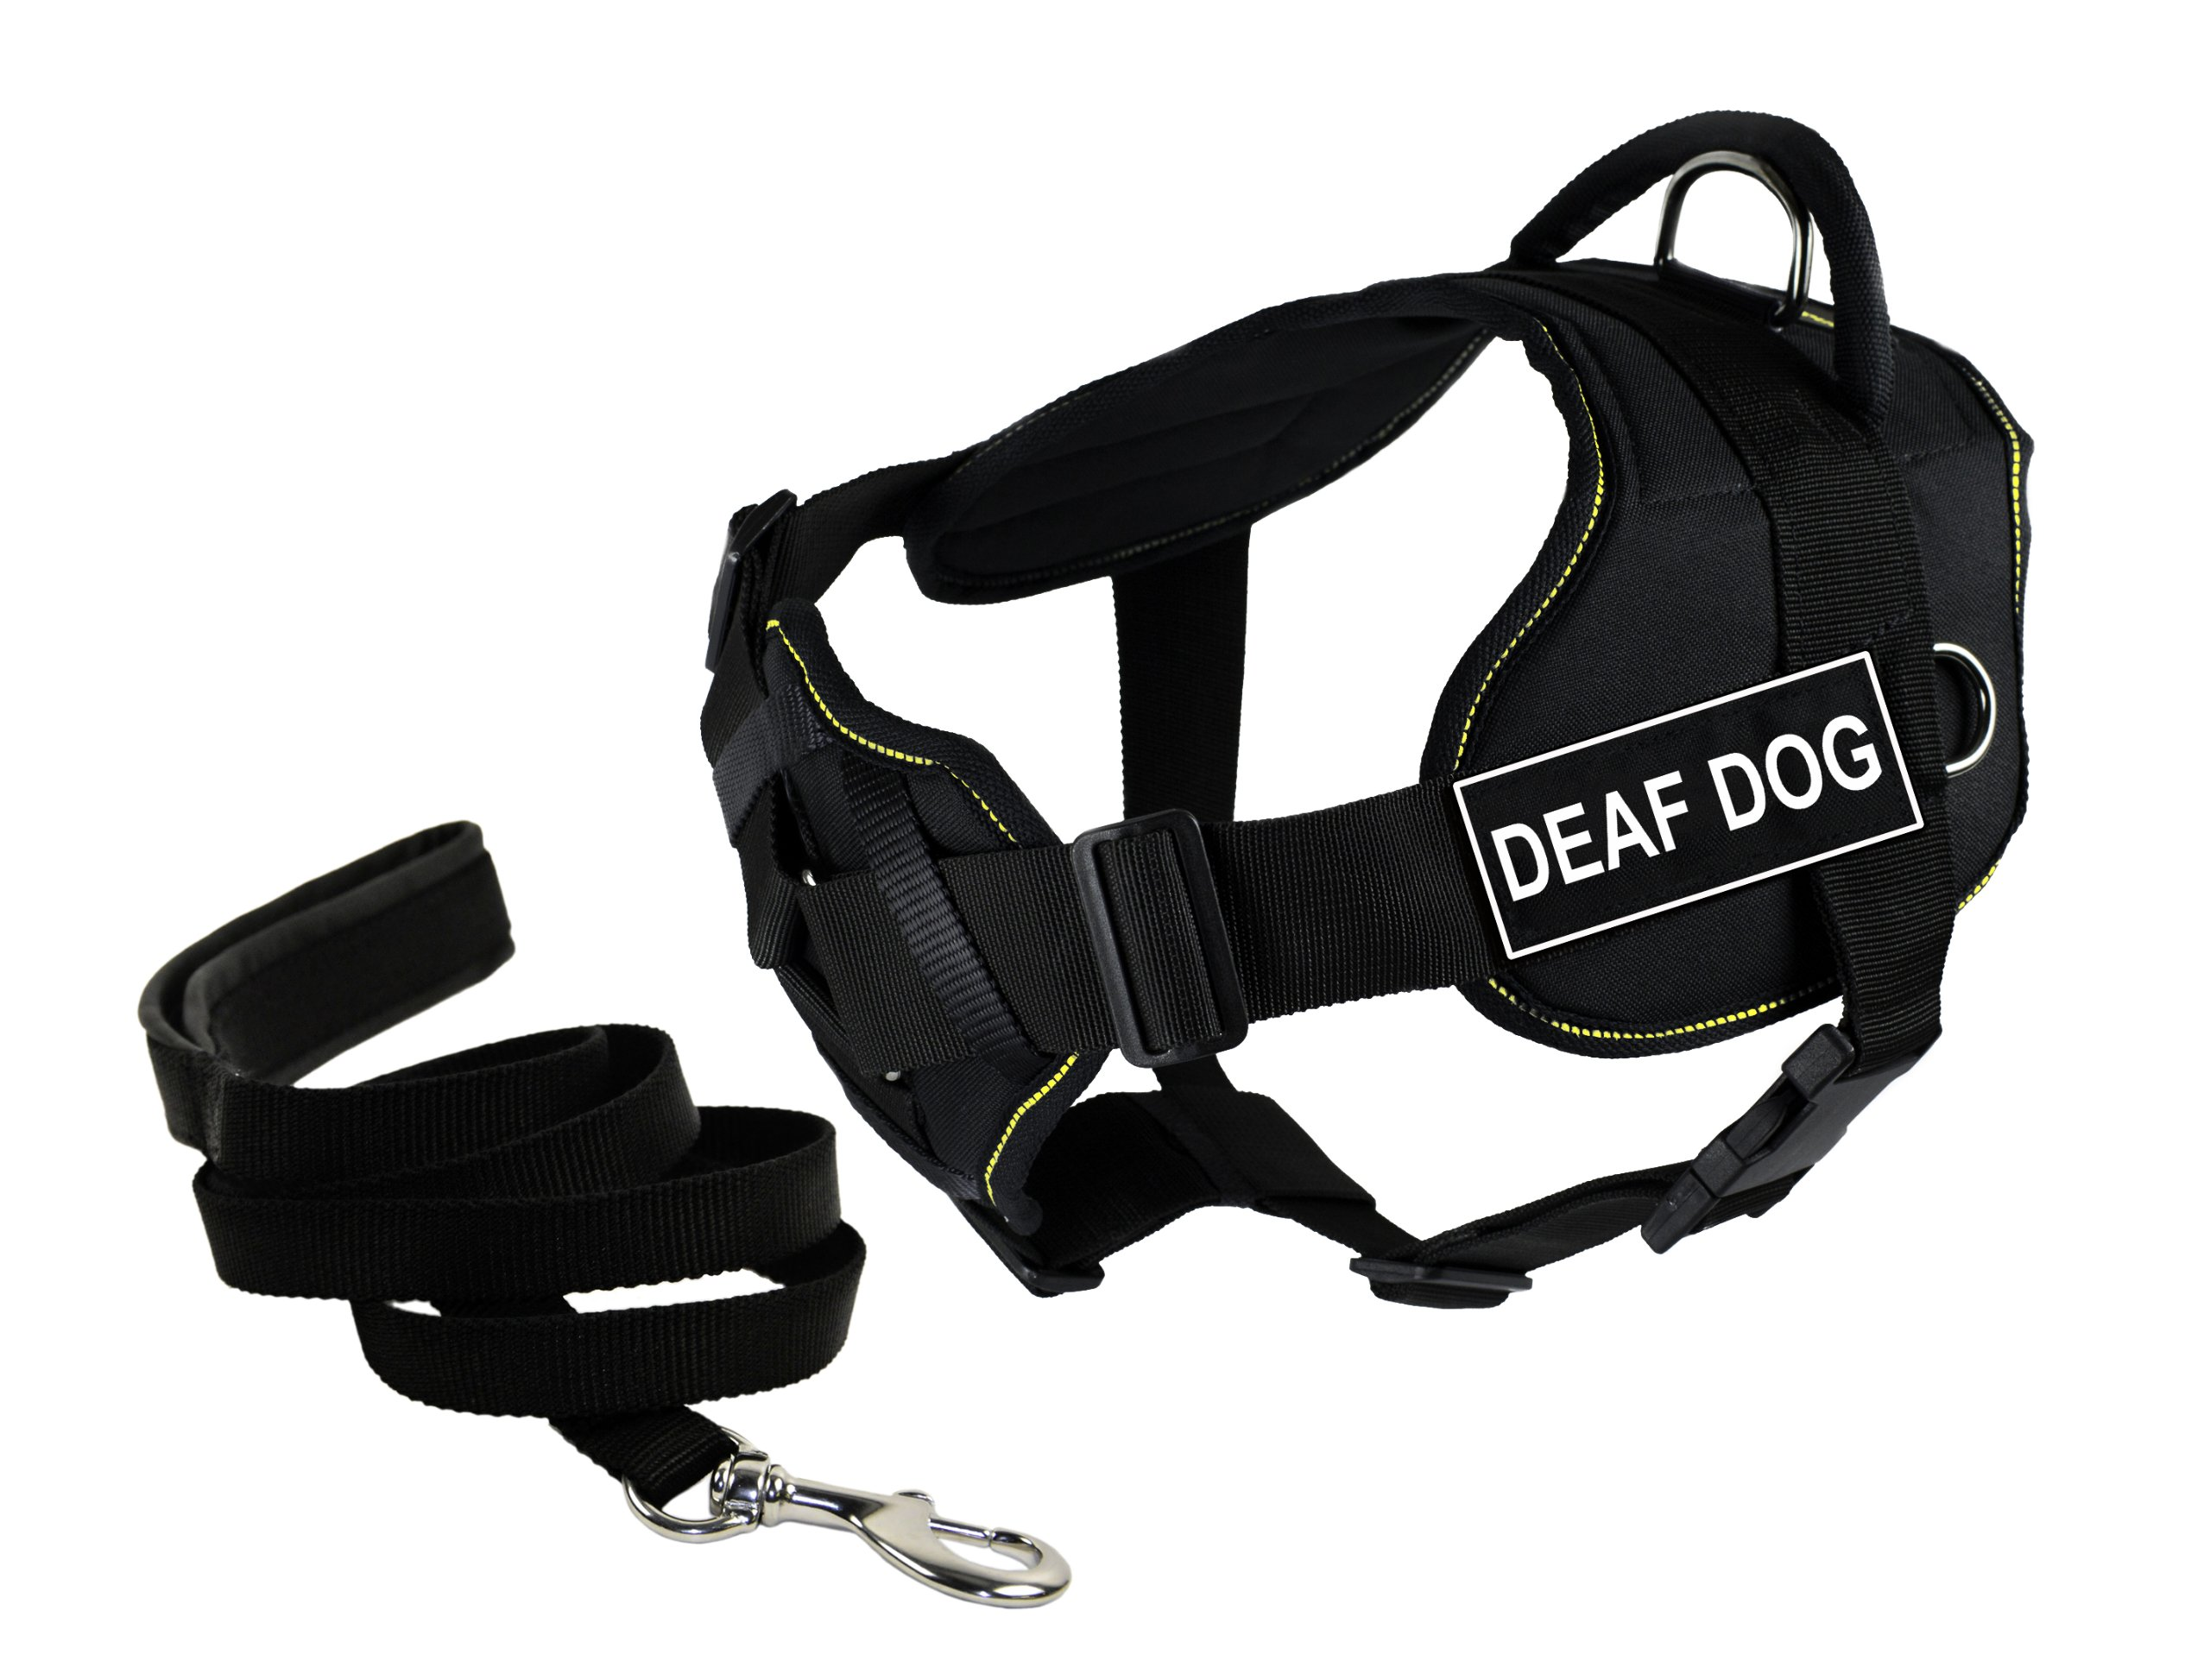 Dean & Tyler's DT Fun Chest Support ''DEAF DOG '' Harness, Large, with 6 ft Padded Puppy Leash.